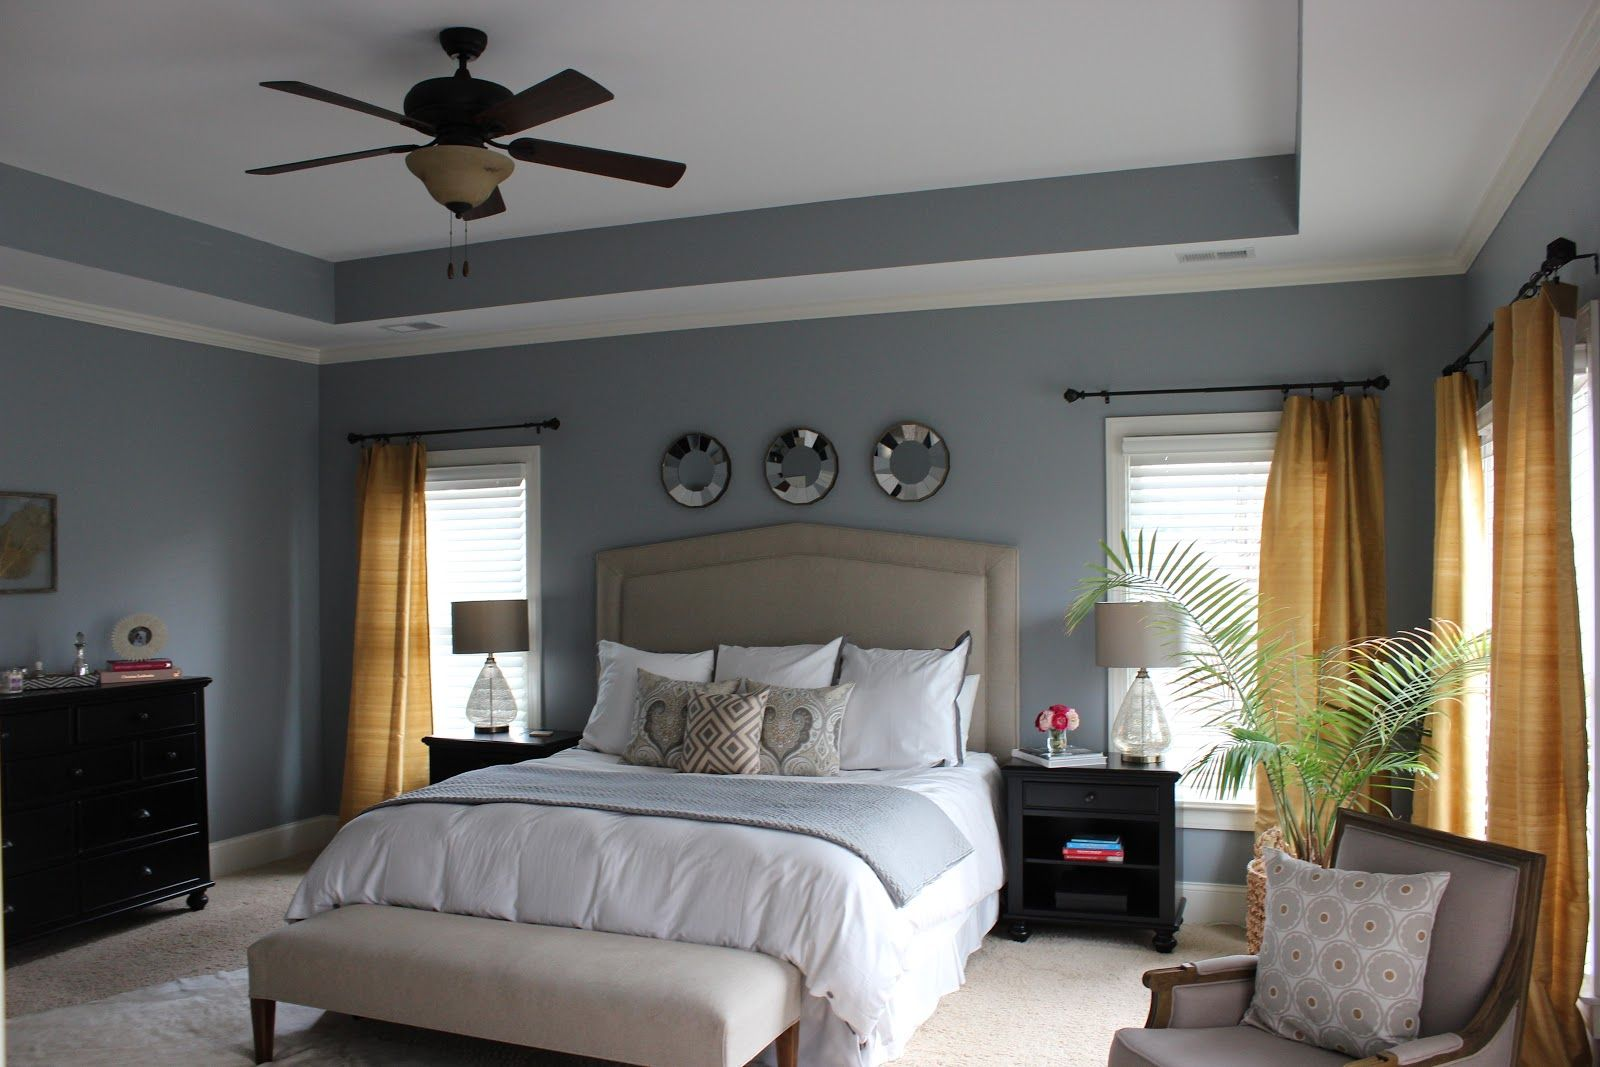 Benjamin Moore Gull Wing Grey Walls Great Master Bedroom Color Decor Idea